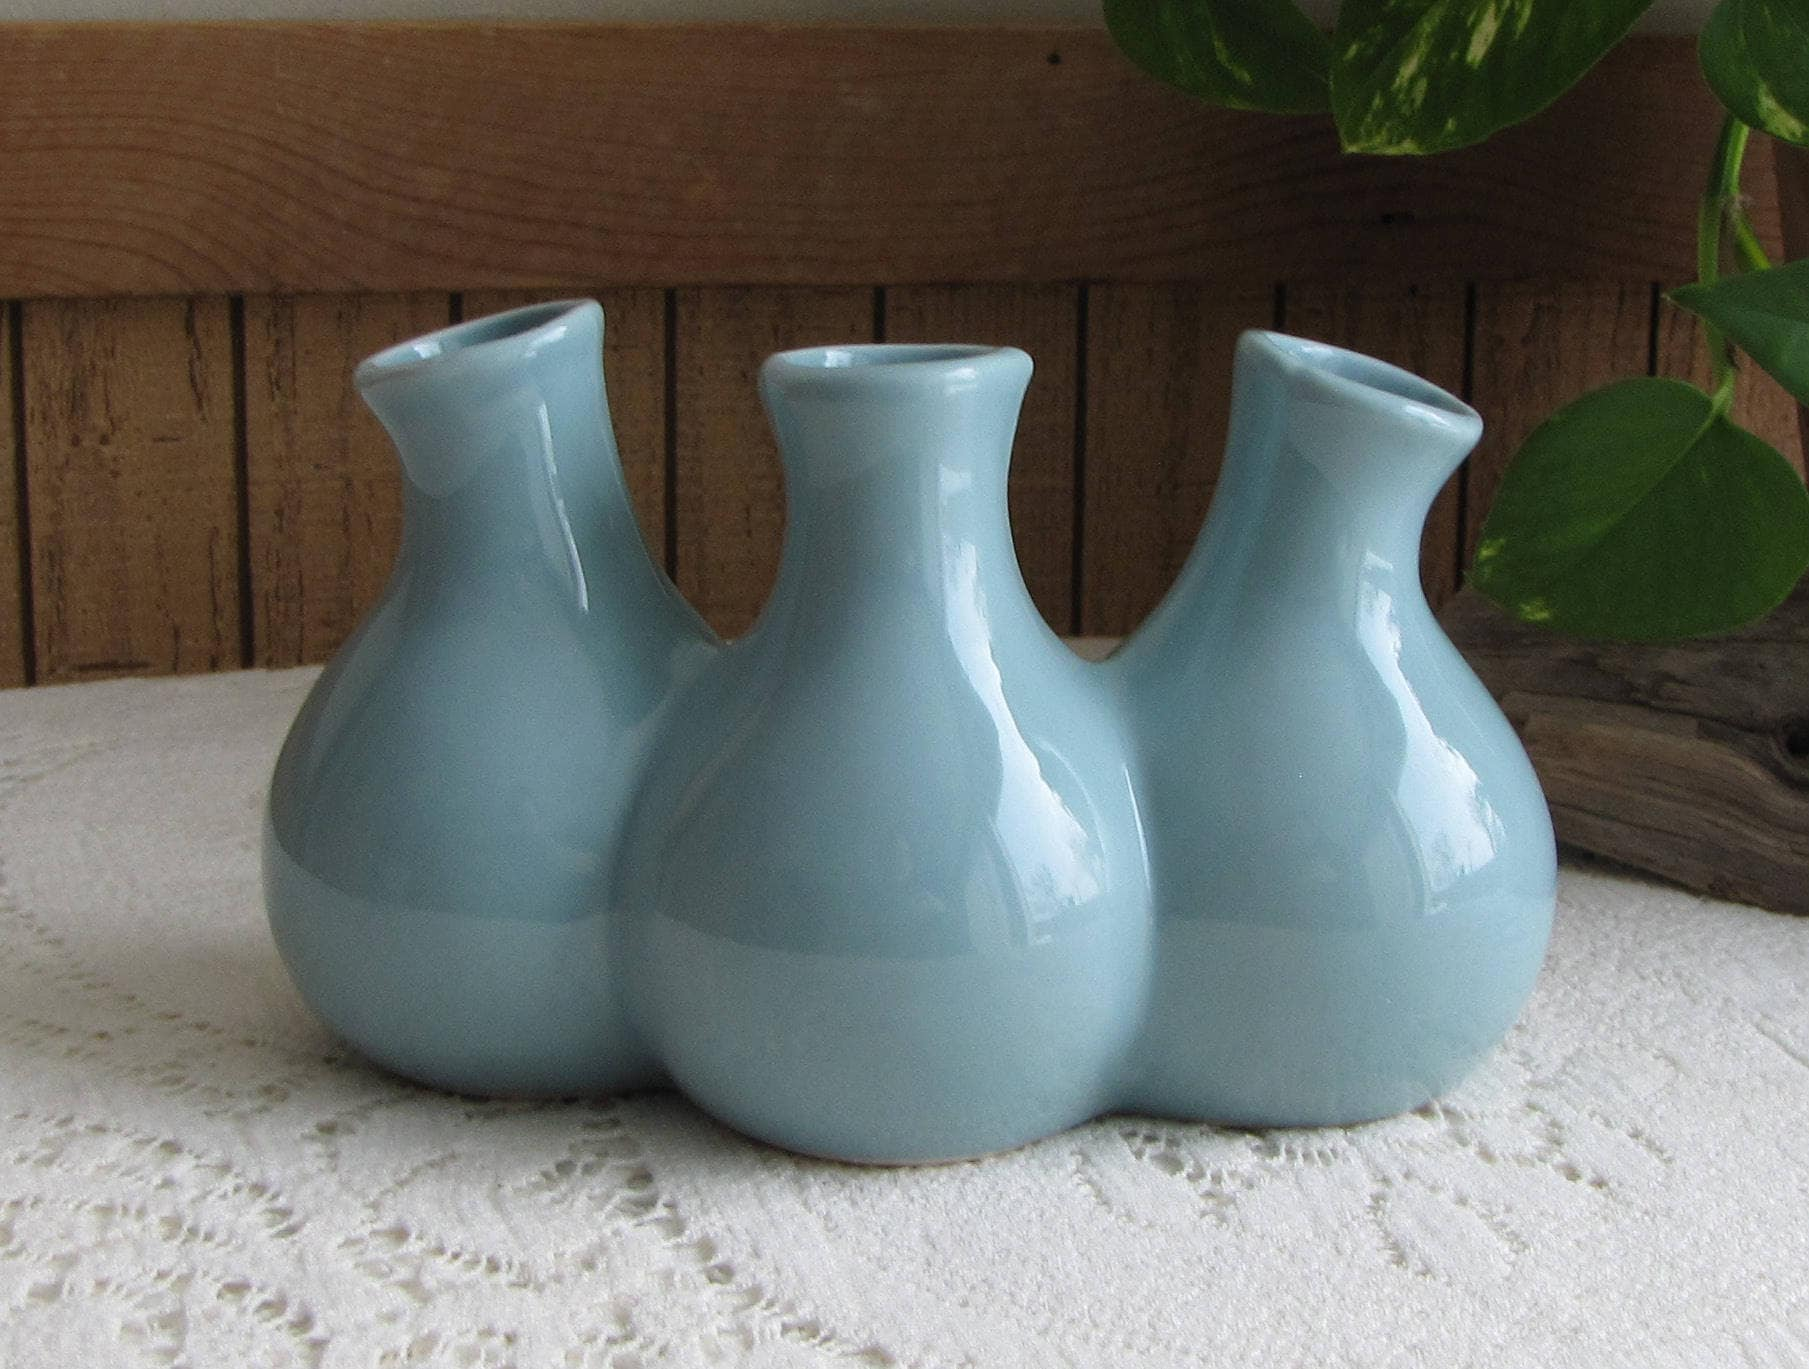 Blue tripled pots pottery vase vintage florist ware and home dcor blue tripled pots pottery vase vintage florist ware and home dcor flower and bud vases reviewsmspy